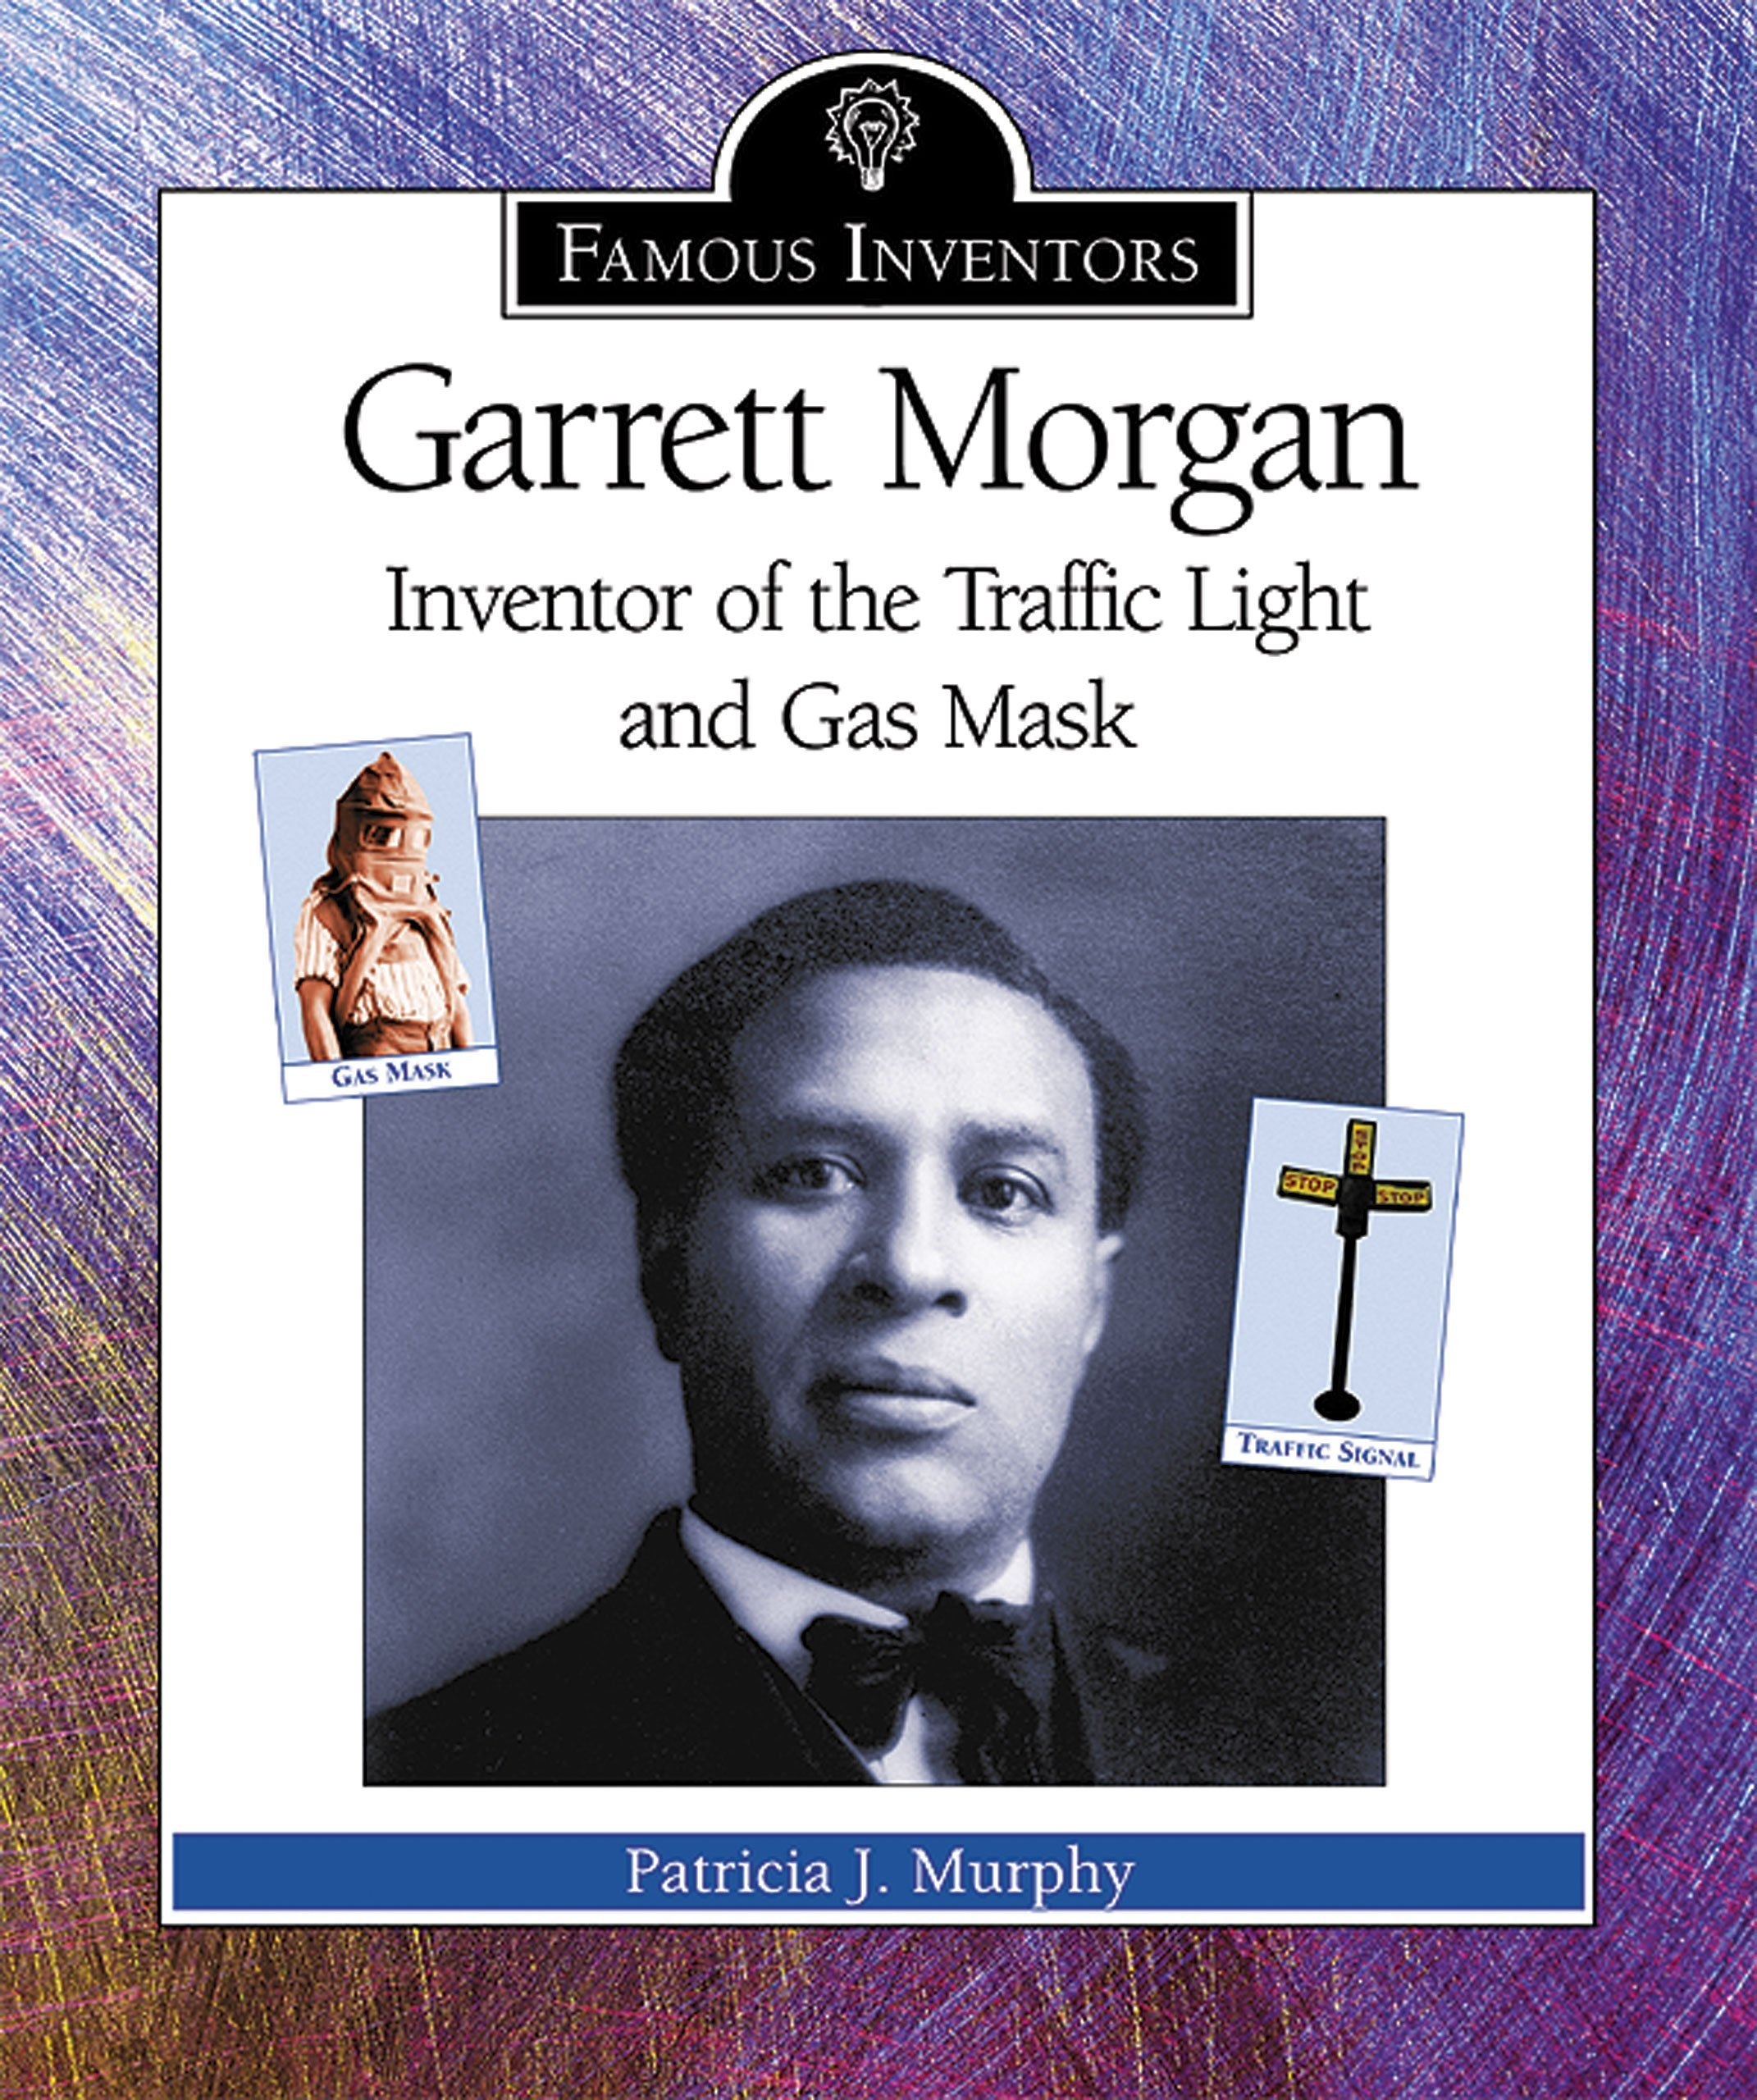 garret morgan Garrett a morgan essay - garrett a morgan garrett augustus morgan was born in 1877 in paris, kentucky he dropped out of school at the age of 14 and moved to cleveland ohio where he began working at a sewing-machine shop.